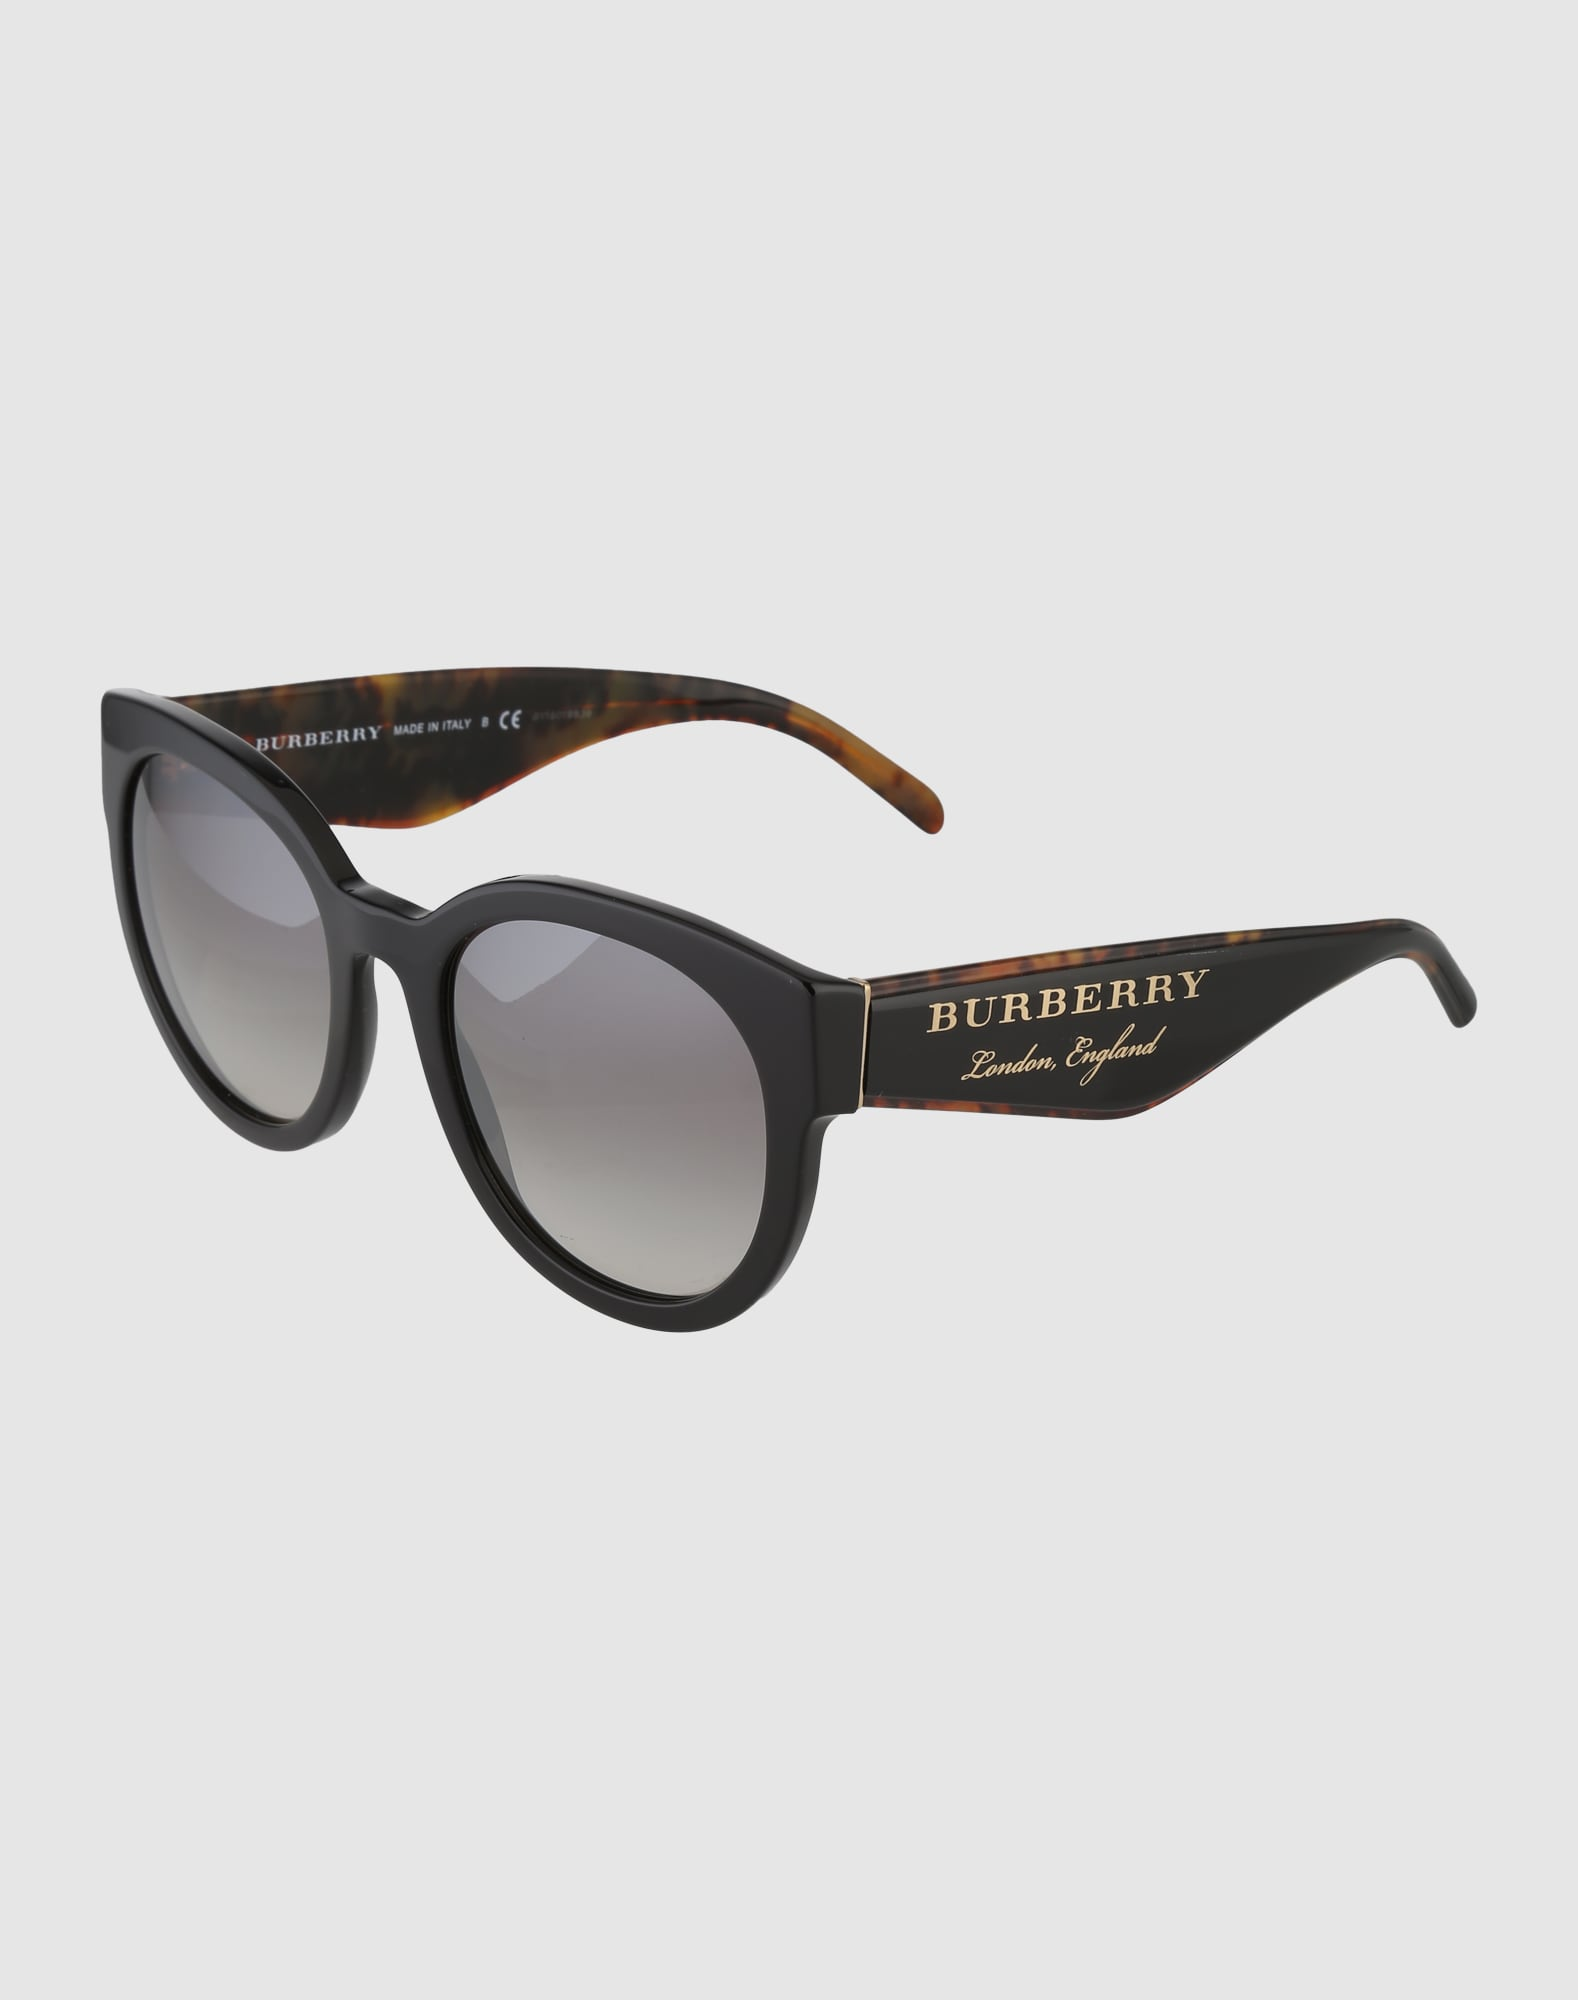 burberry sonnenbrille mit markanten b geln in schwarz. Black Bedroom Furniture Sets. Home Design Ideas